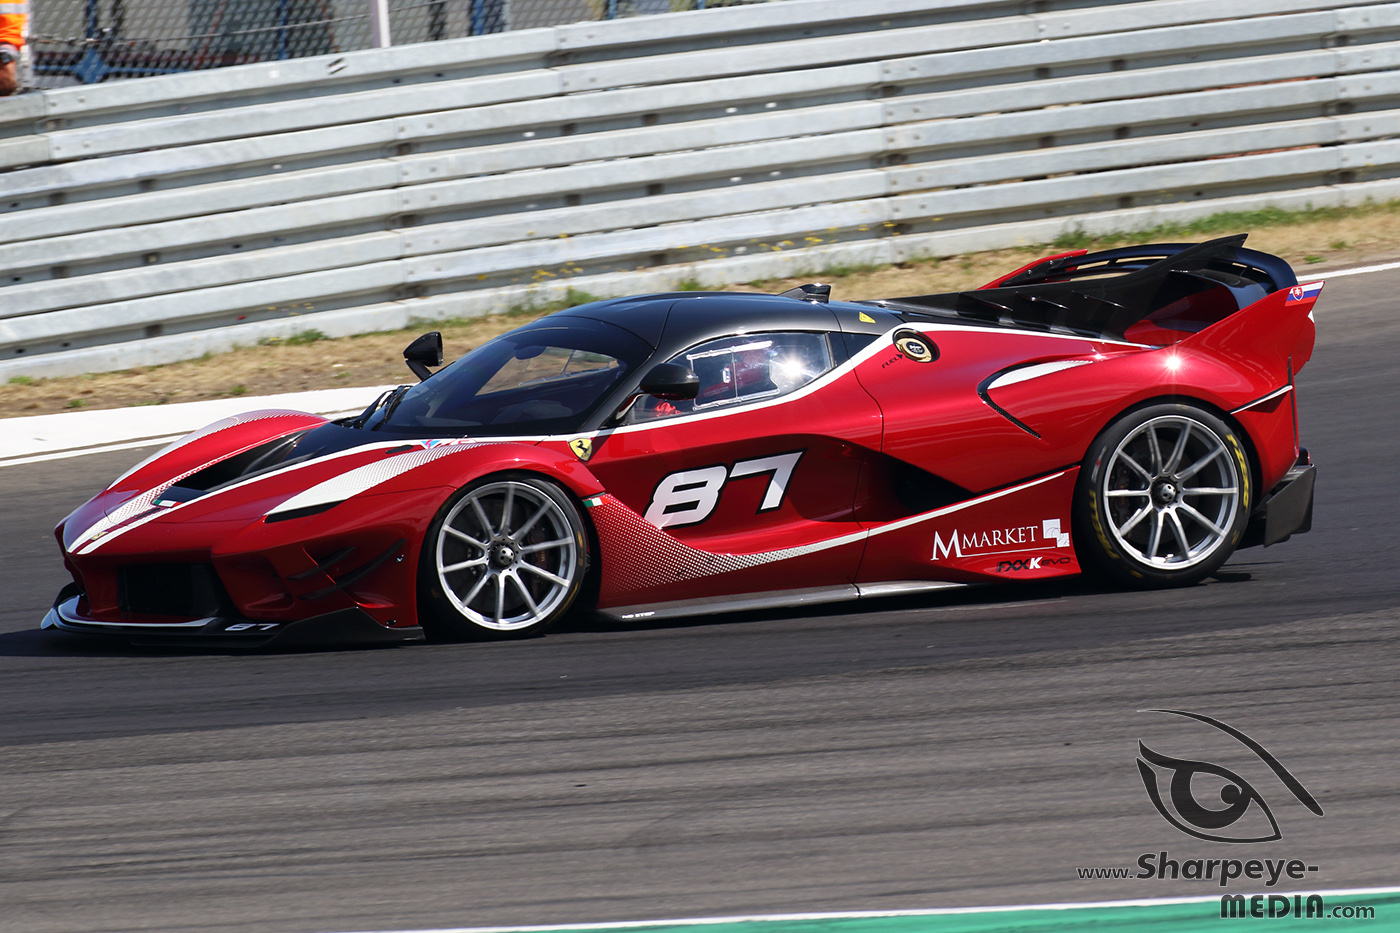 Ferrari Racing Days Nürburgring Deutschland 06 07 2019